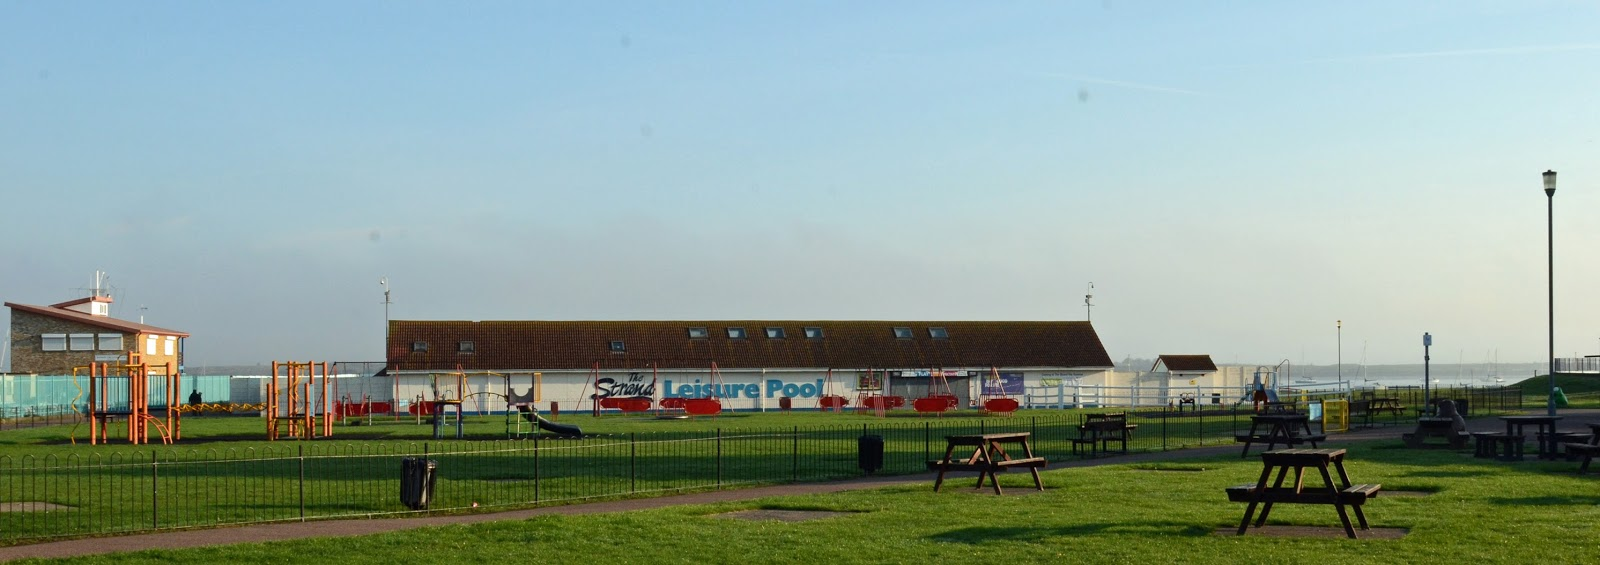 Walks in out of london riverside country park - The strand swimming pool gillingham ...